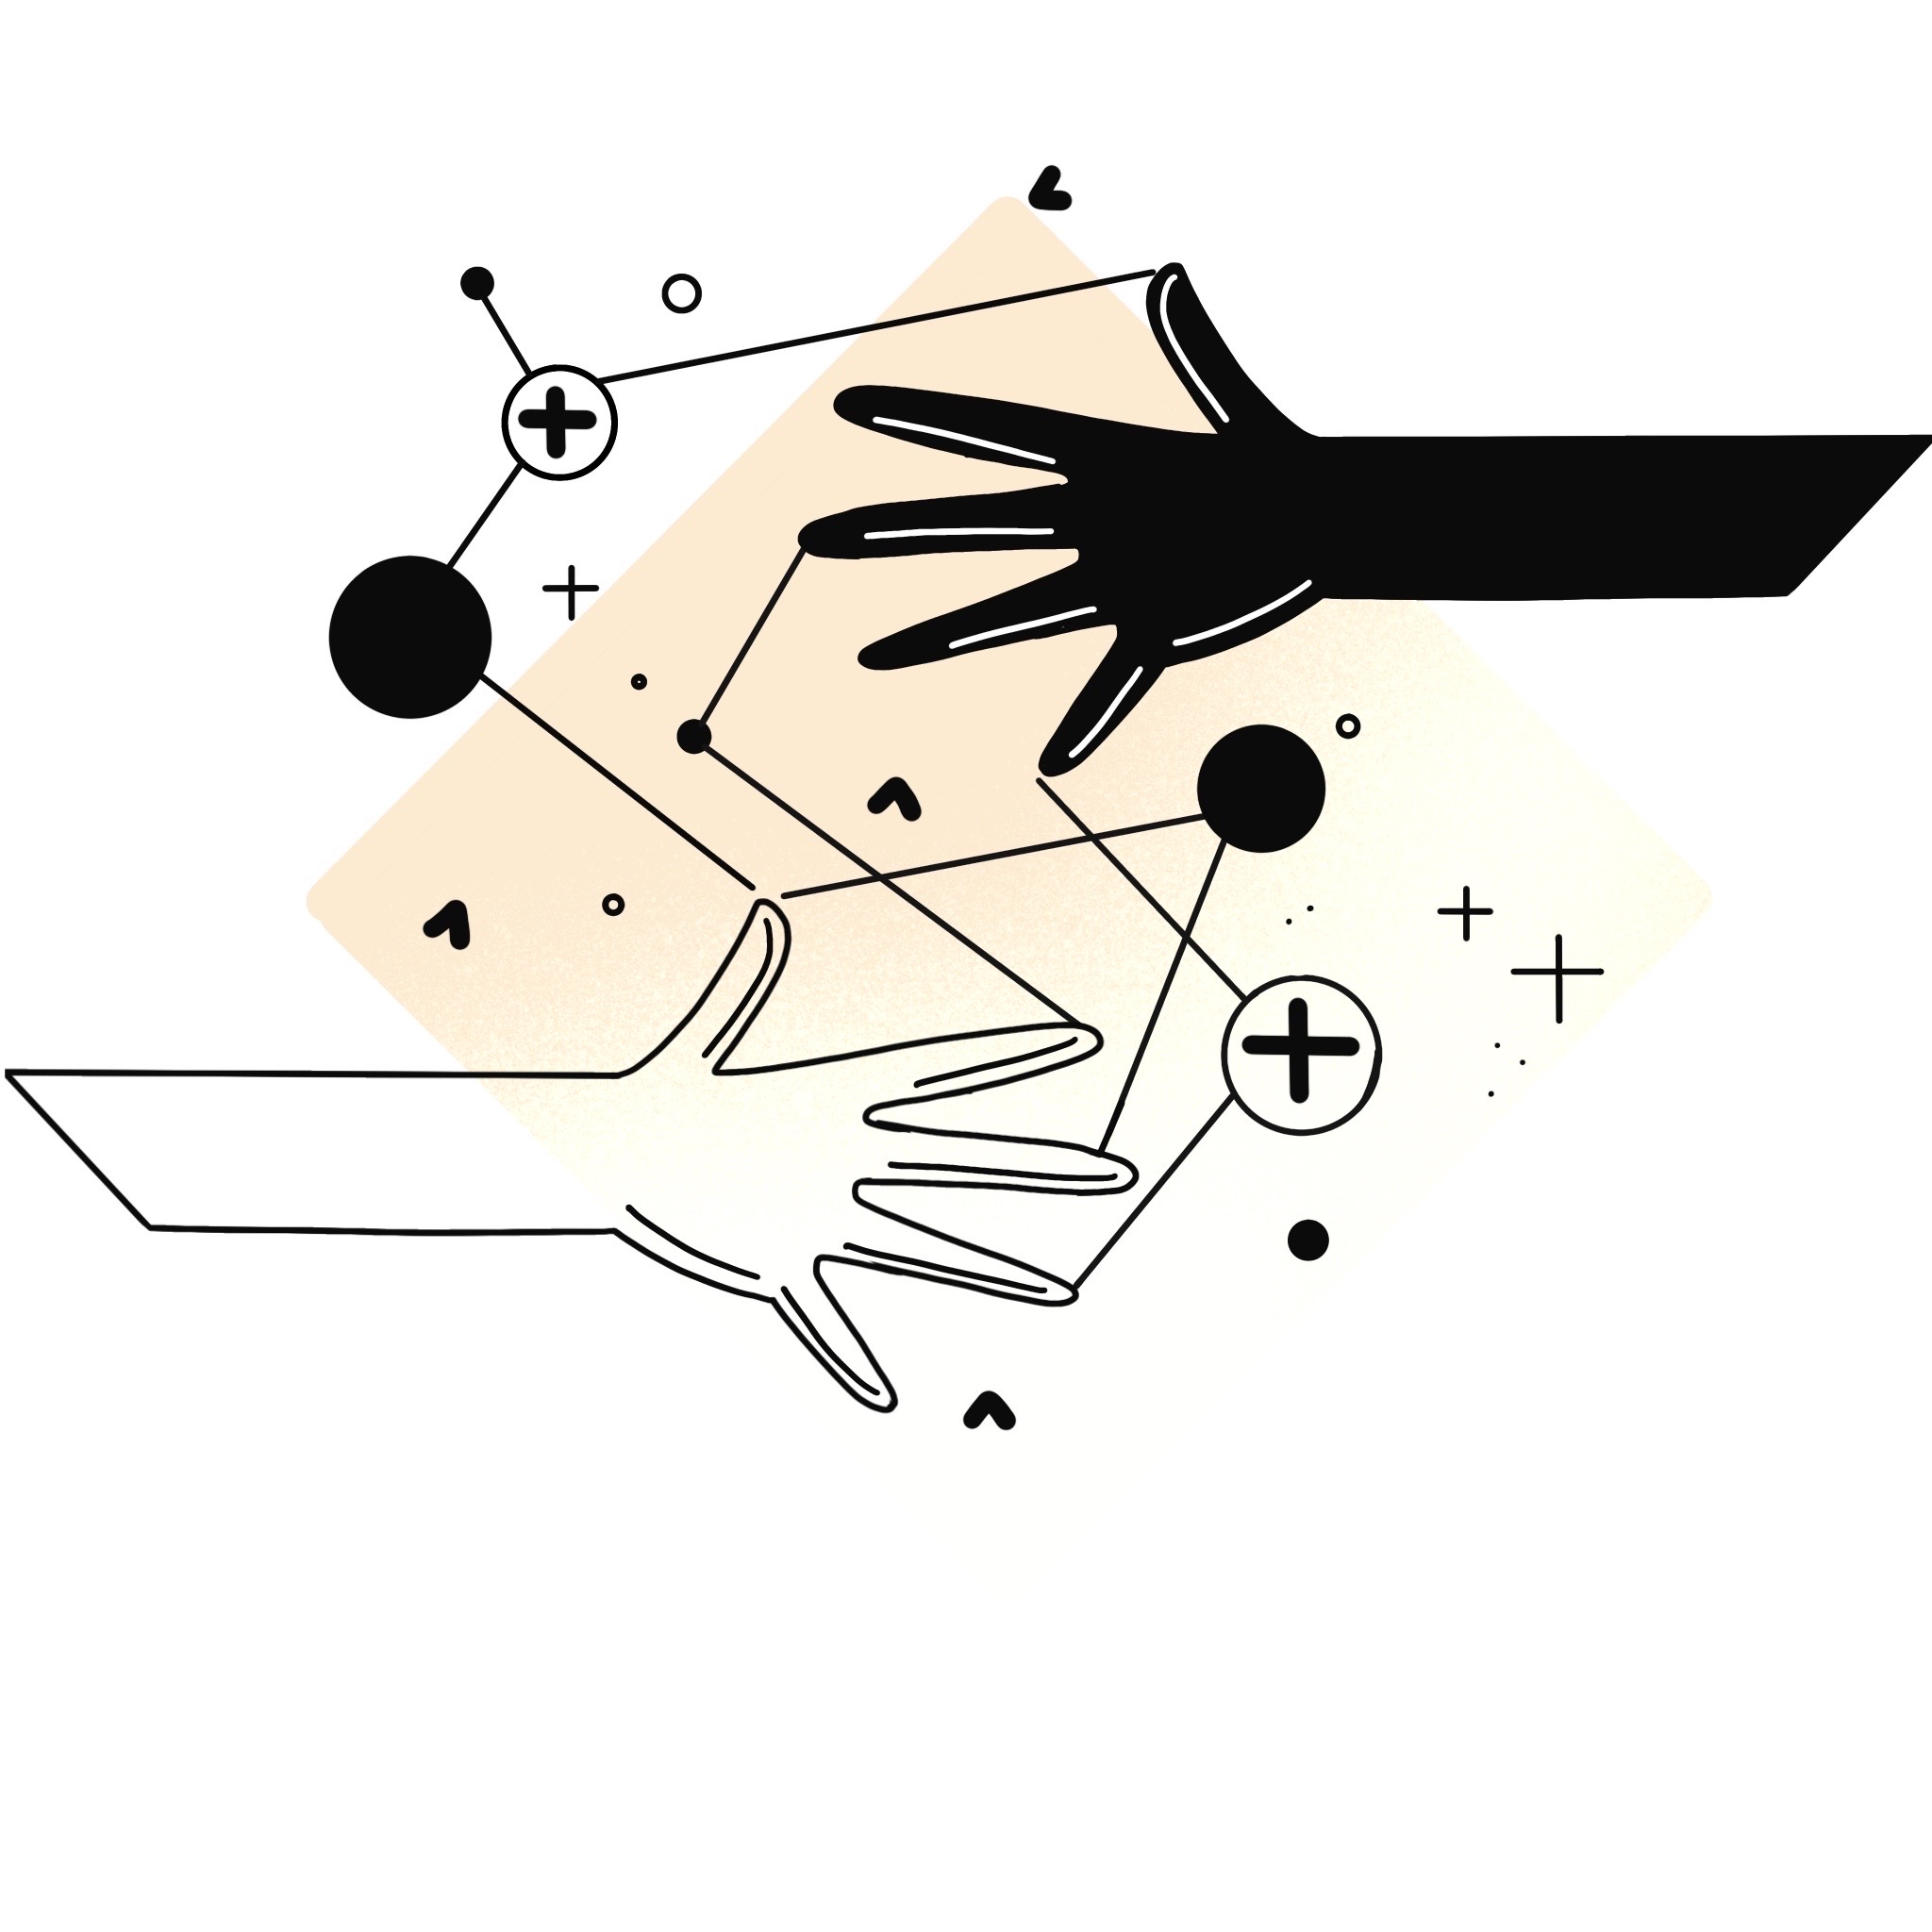 Icon of two hands, connected by lines